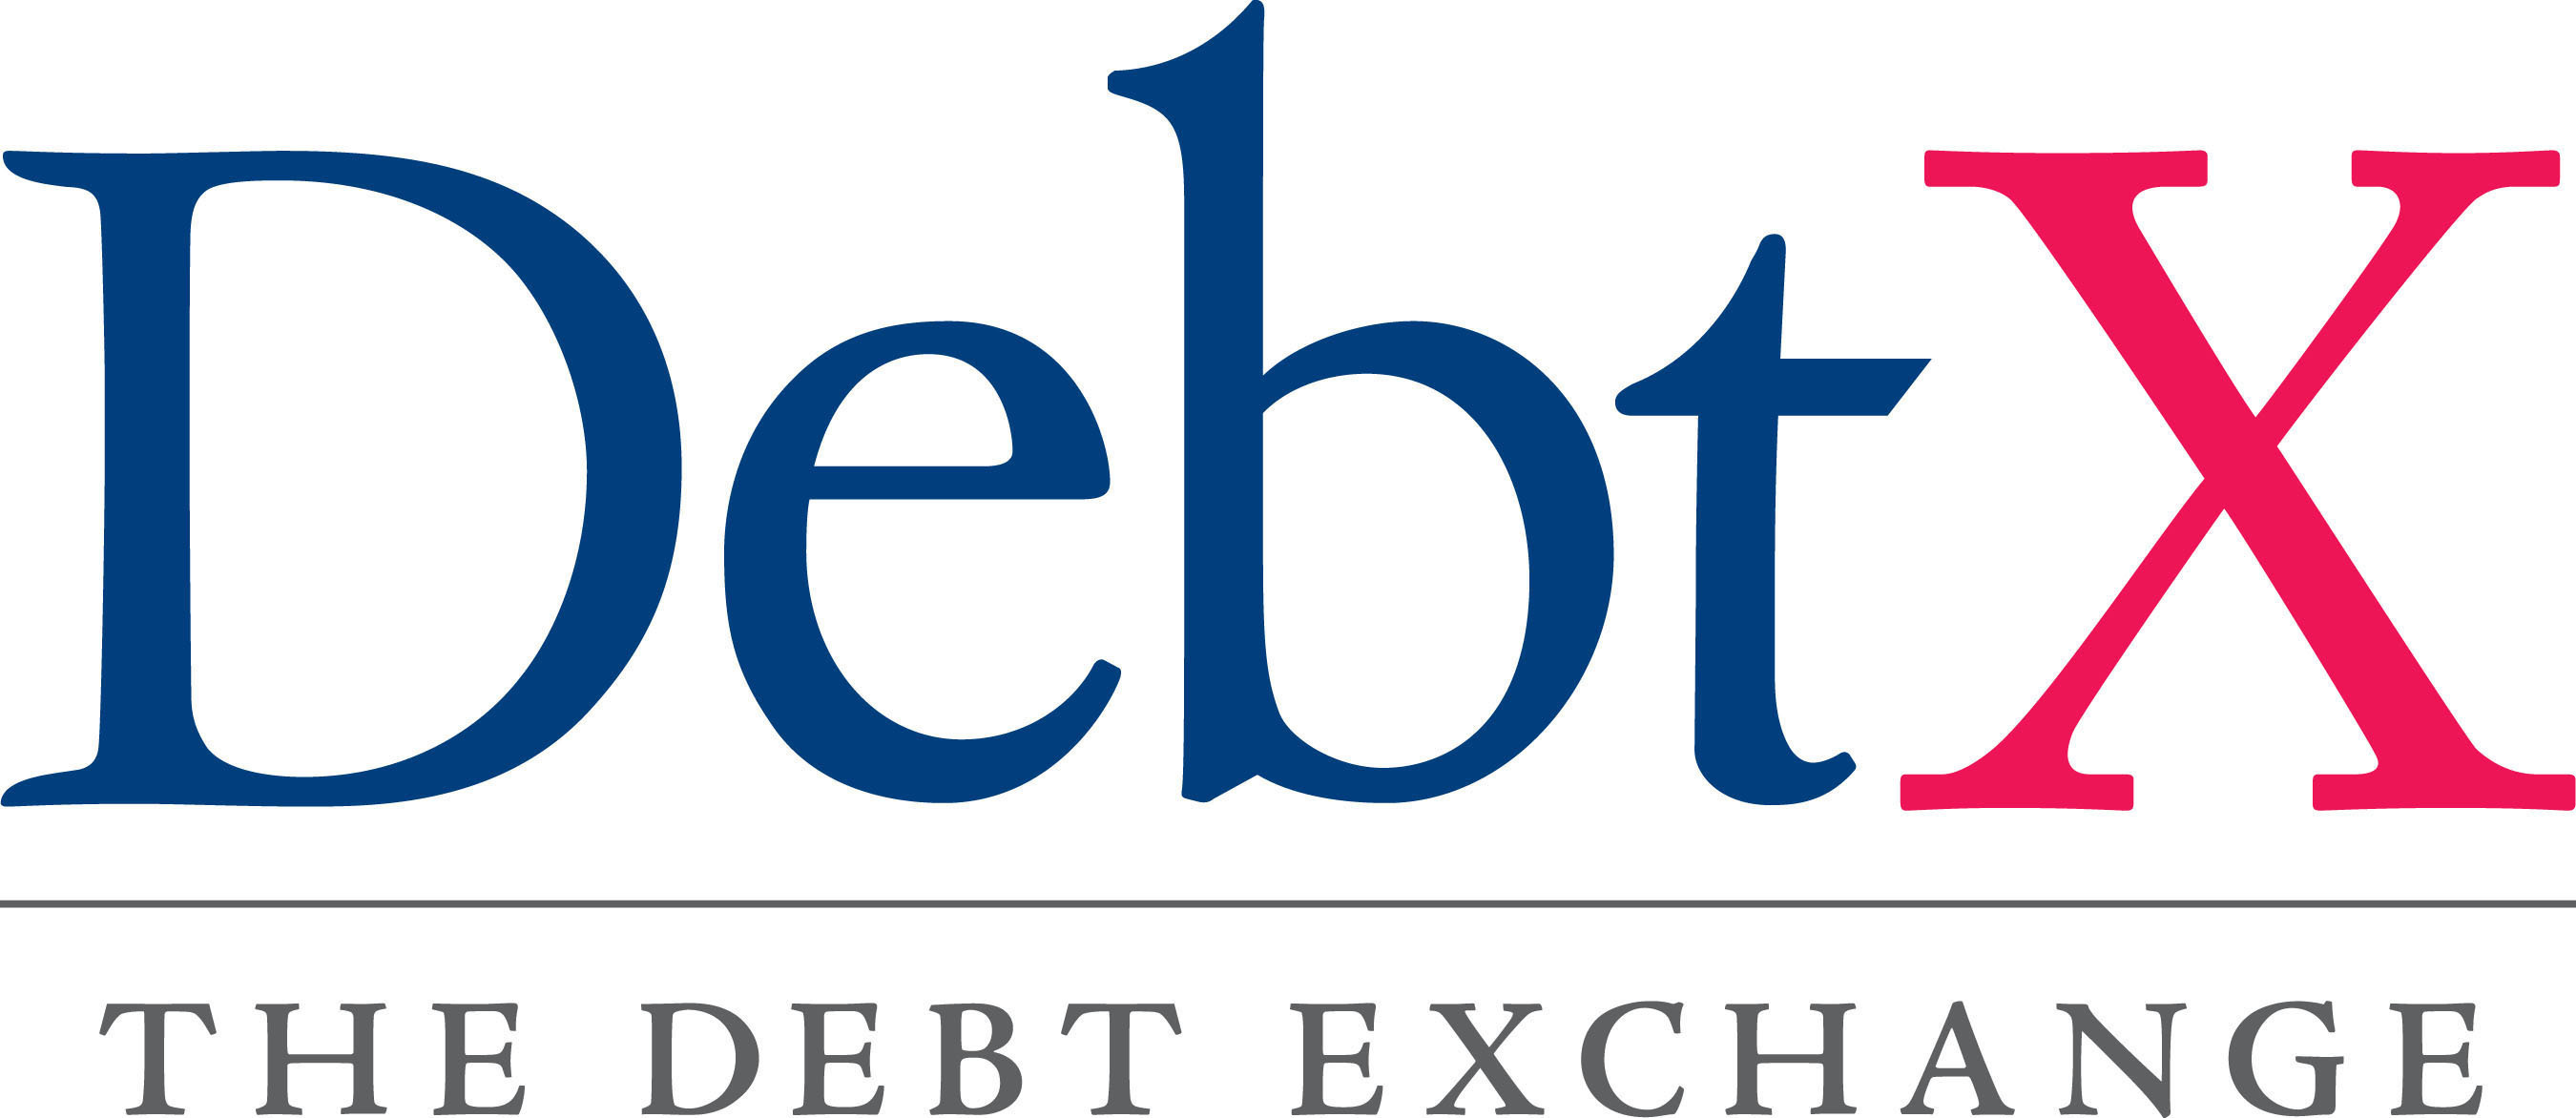 debtx s dxsyndicate now integrated with loan iq https www prnewswire com news releases debtxs dxsyndicate now integrated with loan iq 300102891 html